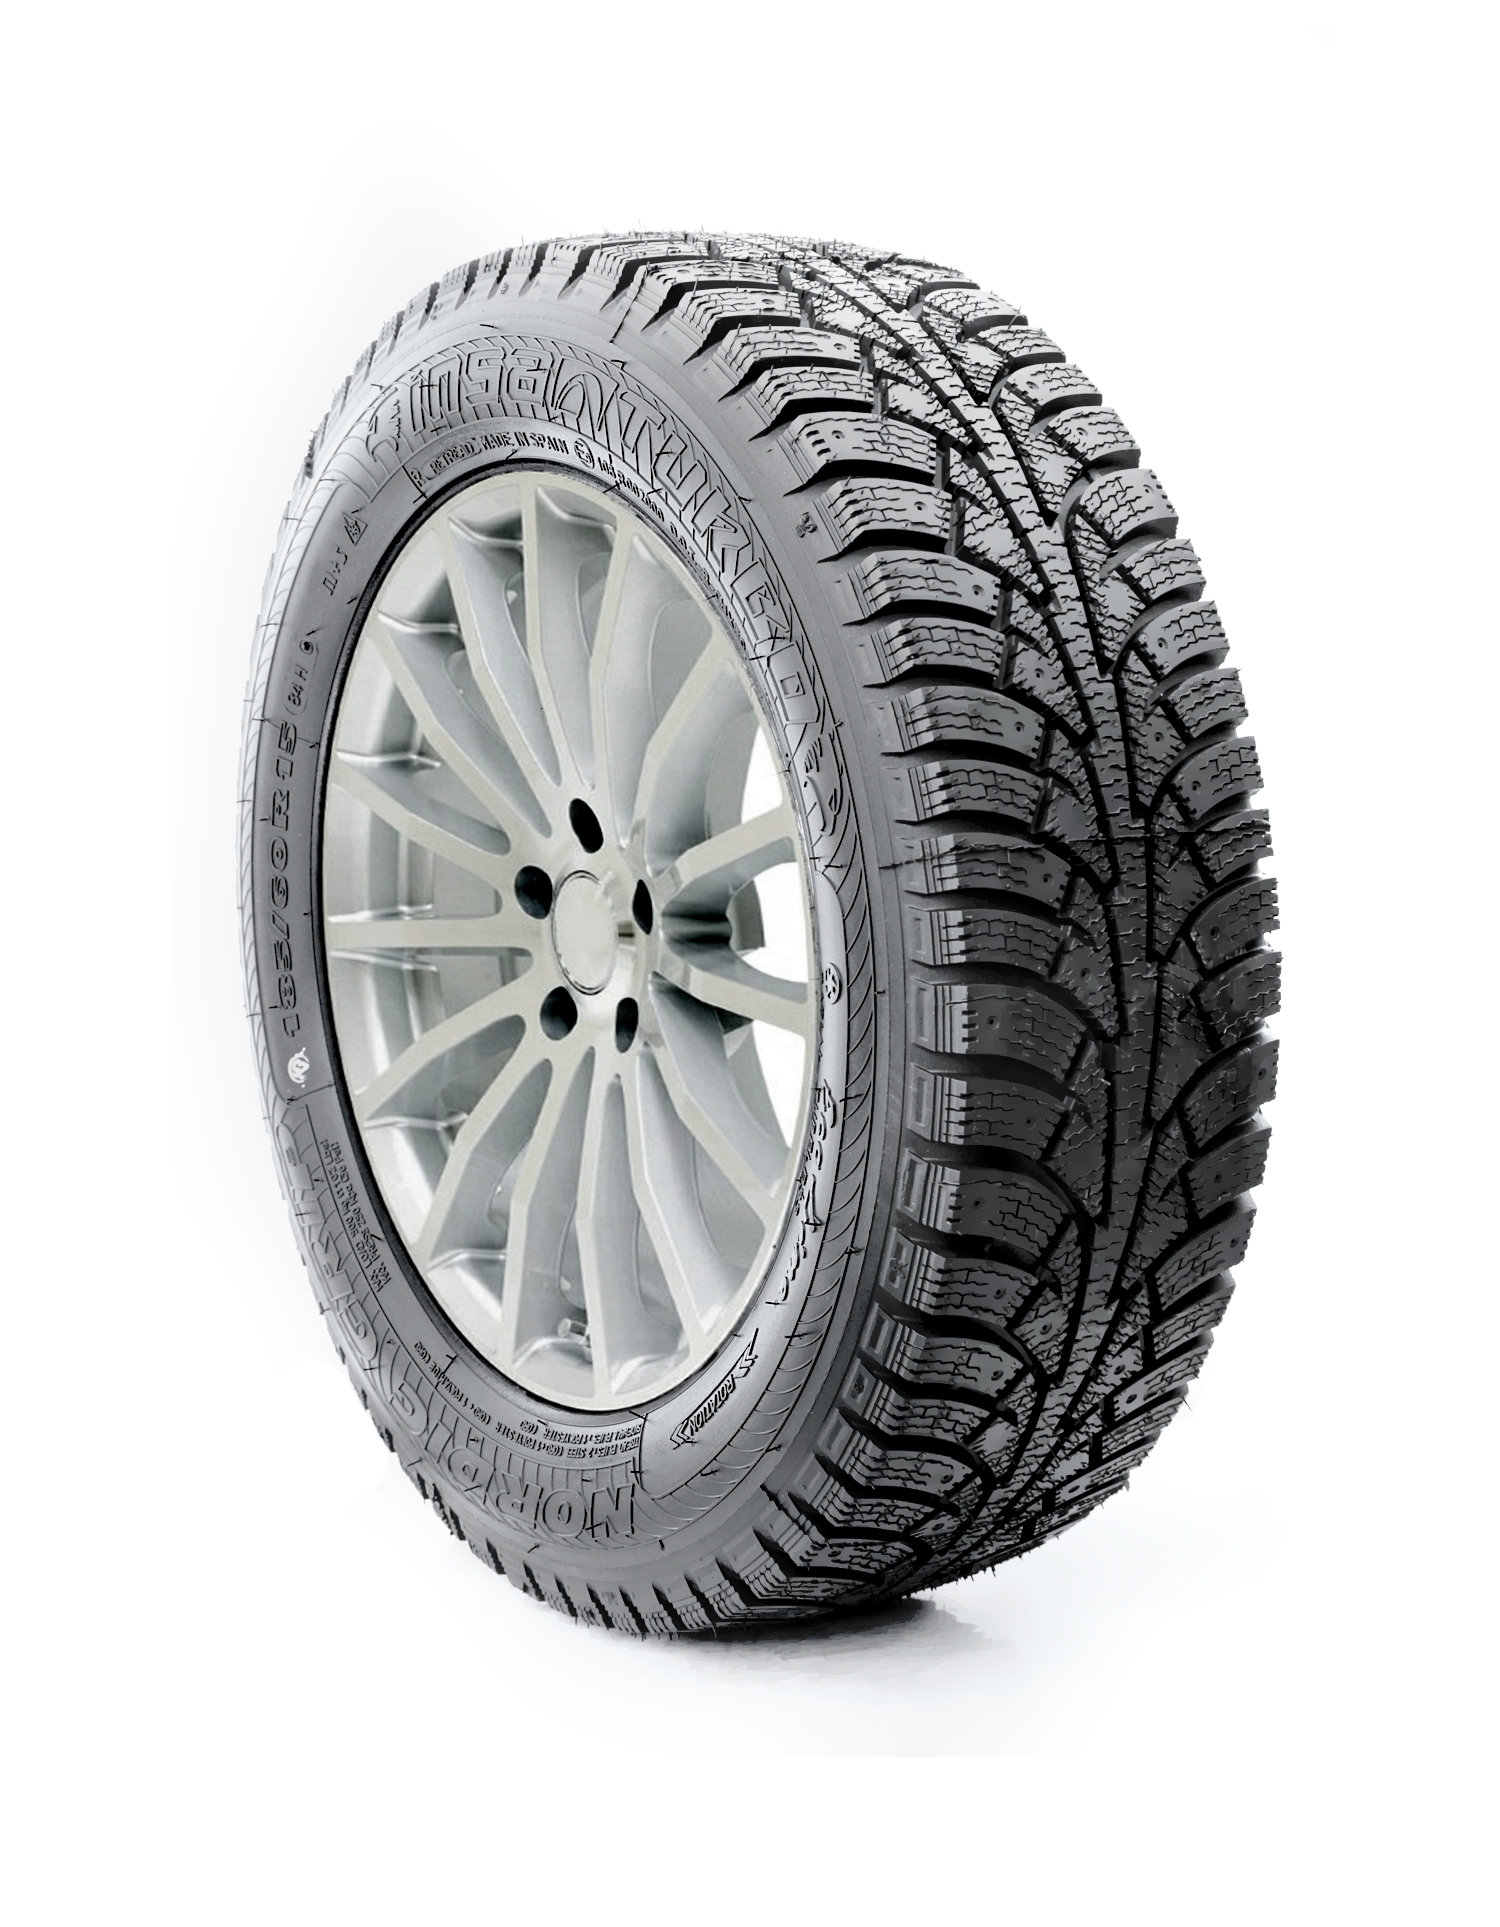 insa-turbo-nordic-grip-205-60r1692h